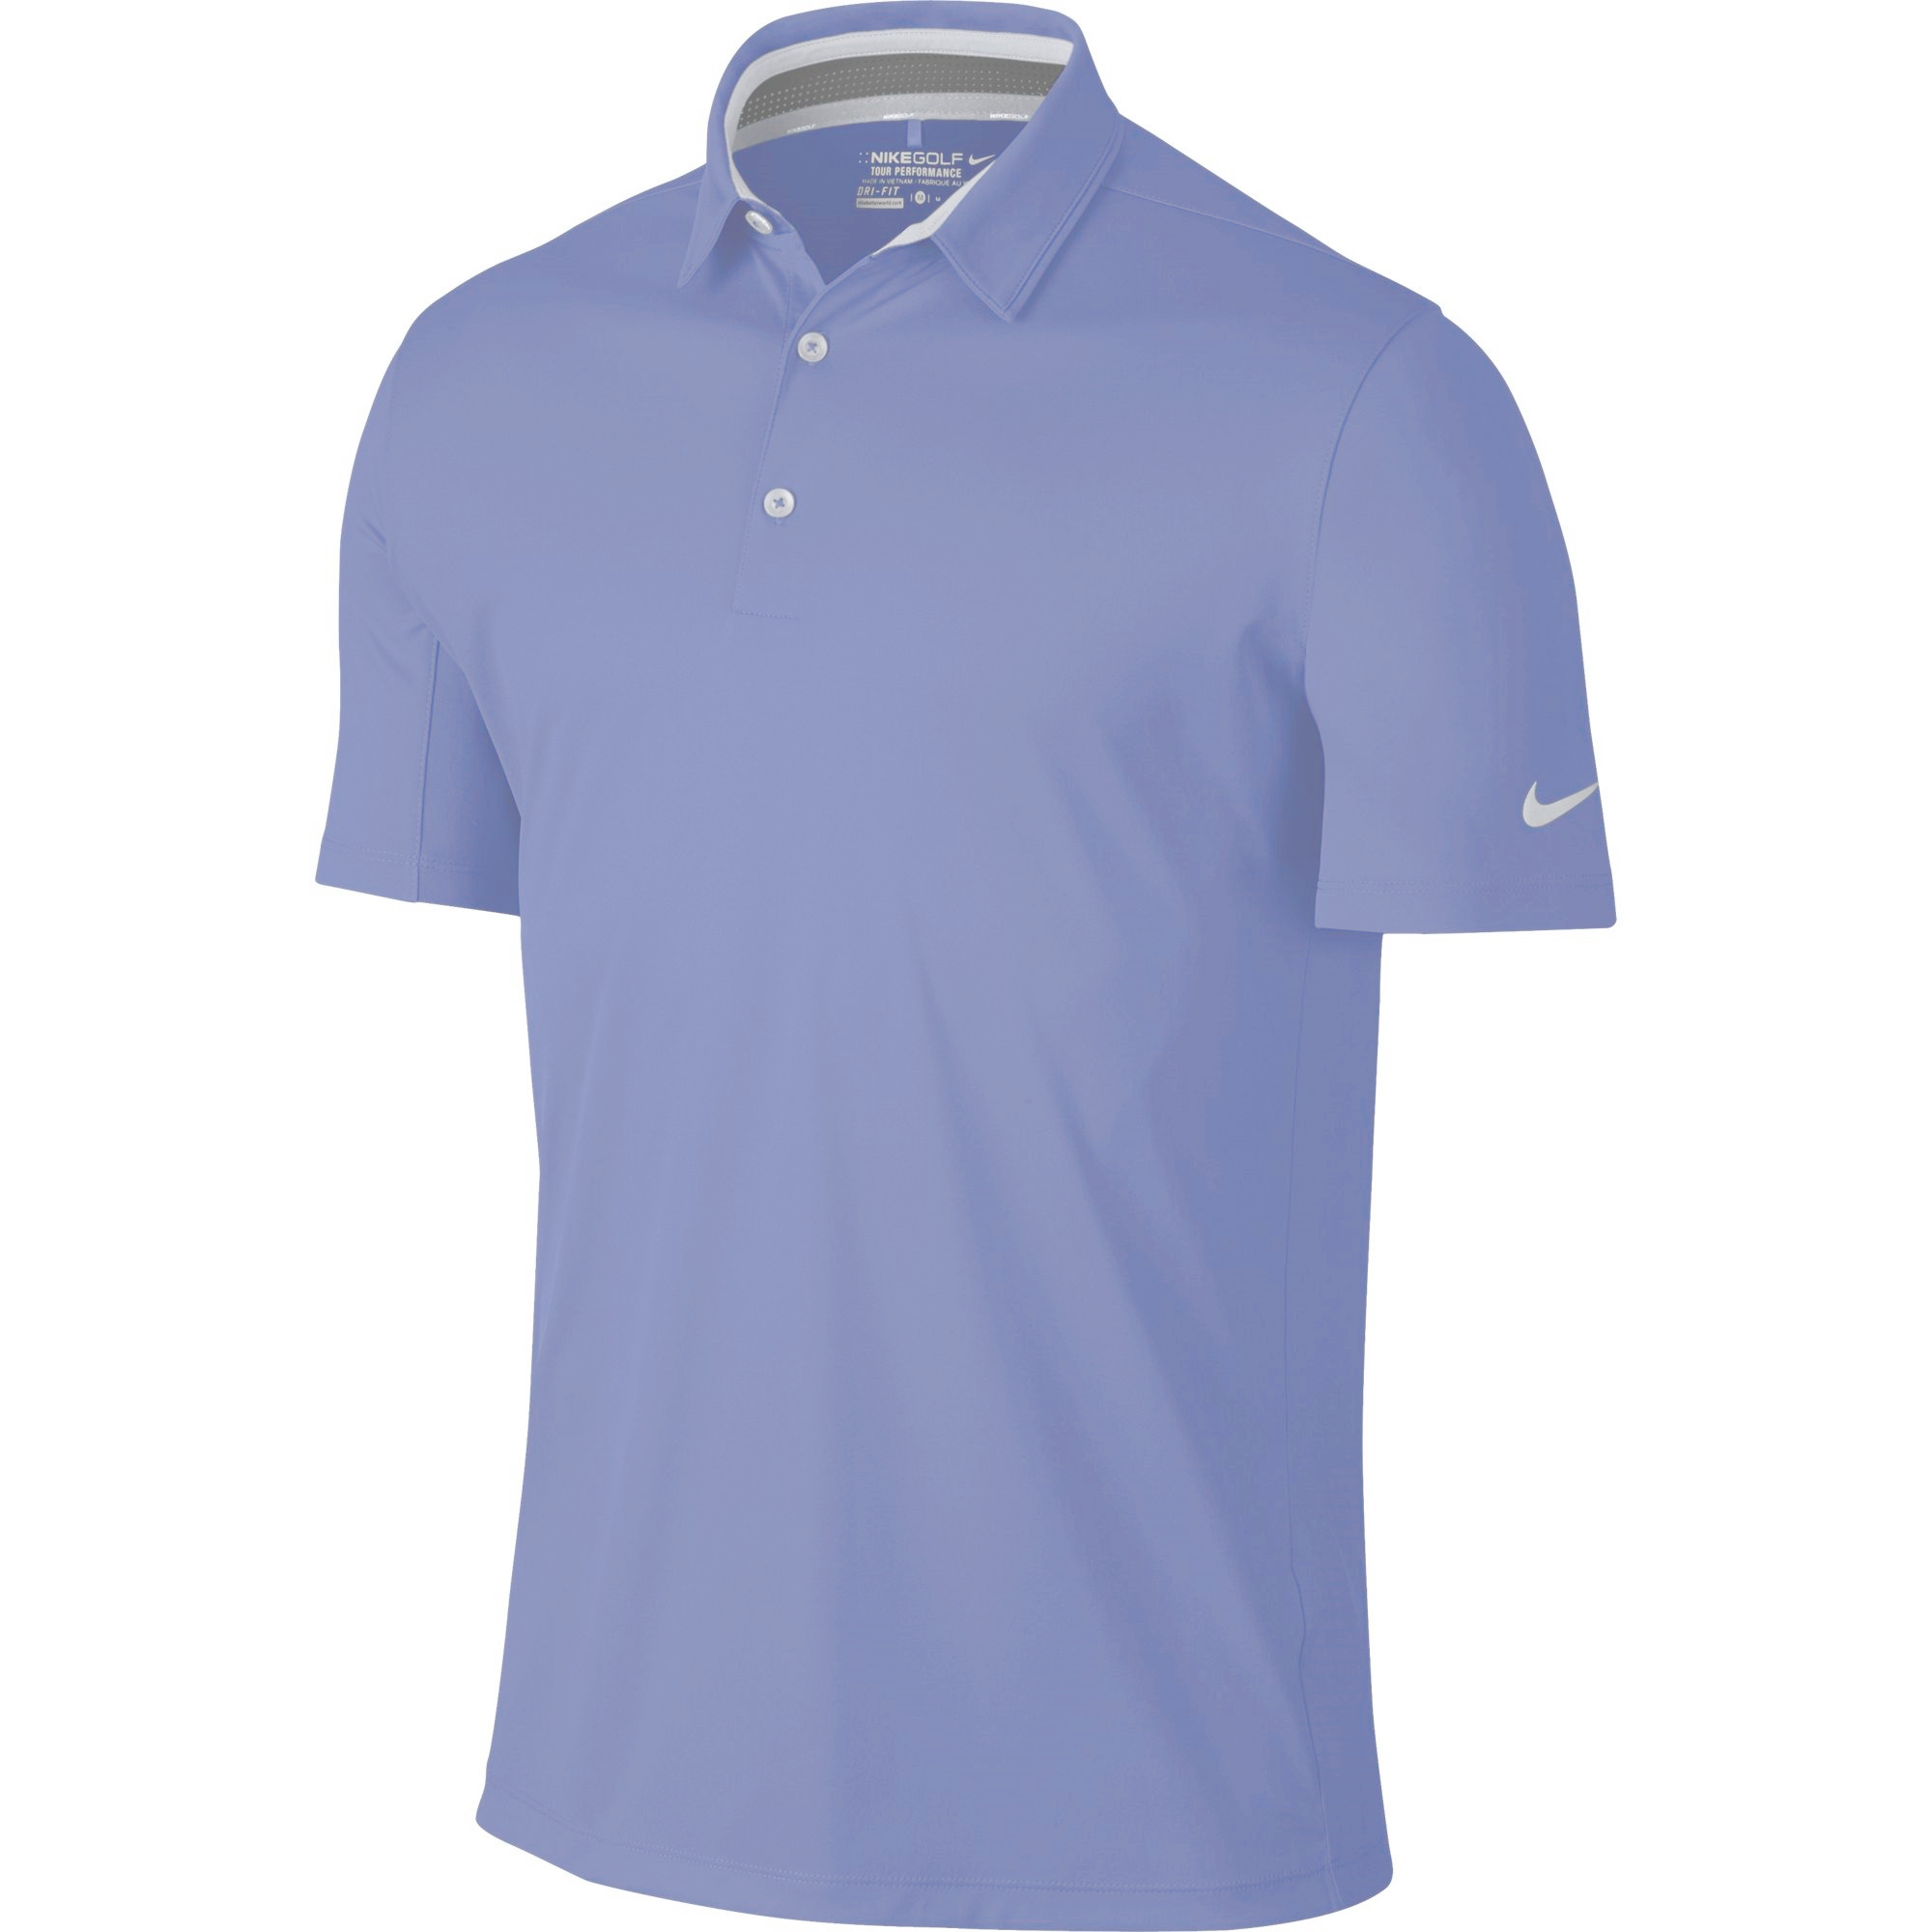 Game on closeouts sporting goods - Nike Golf Closeout Men S Mobility Heather Pique Polo Game Royal 725533 480